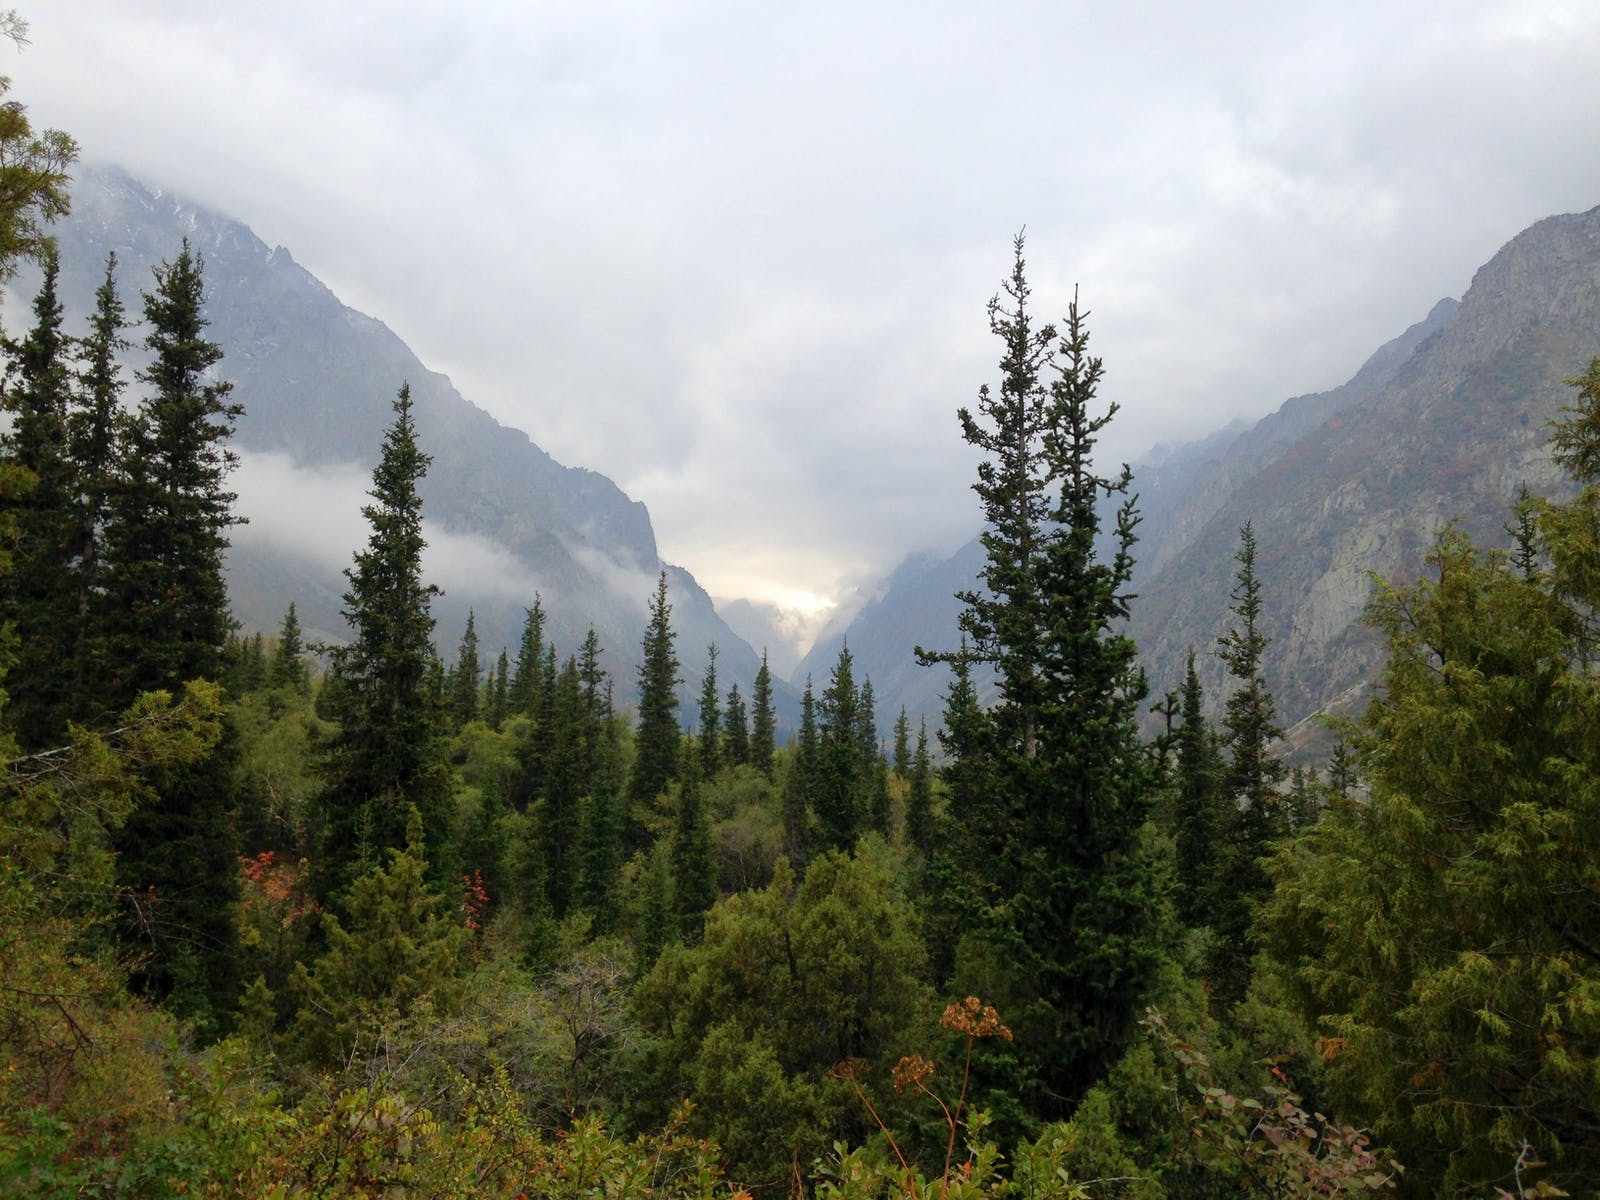 Tian Shan Montane Conifer Forests